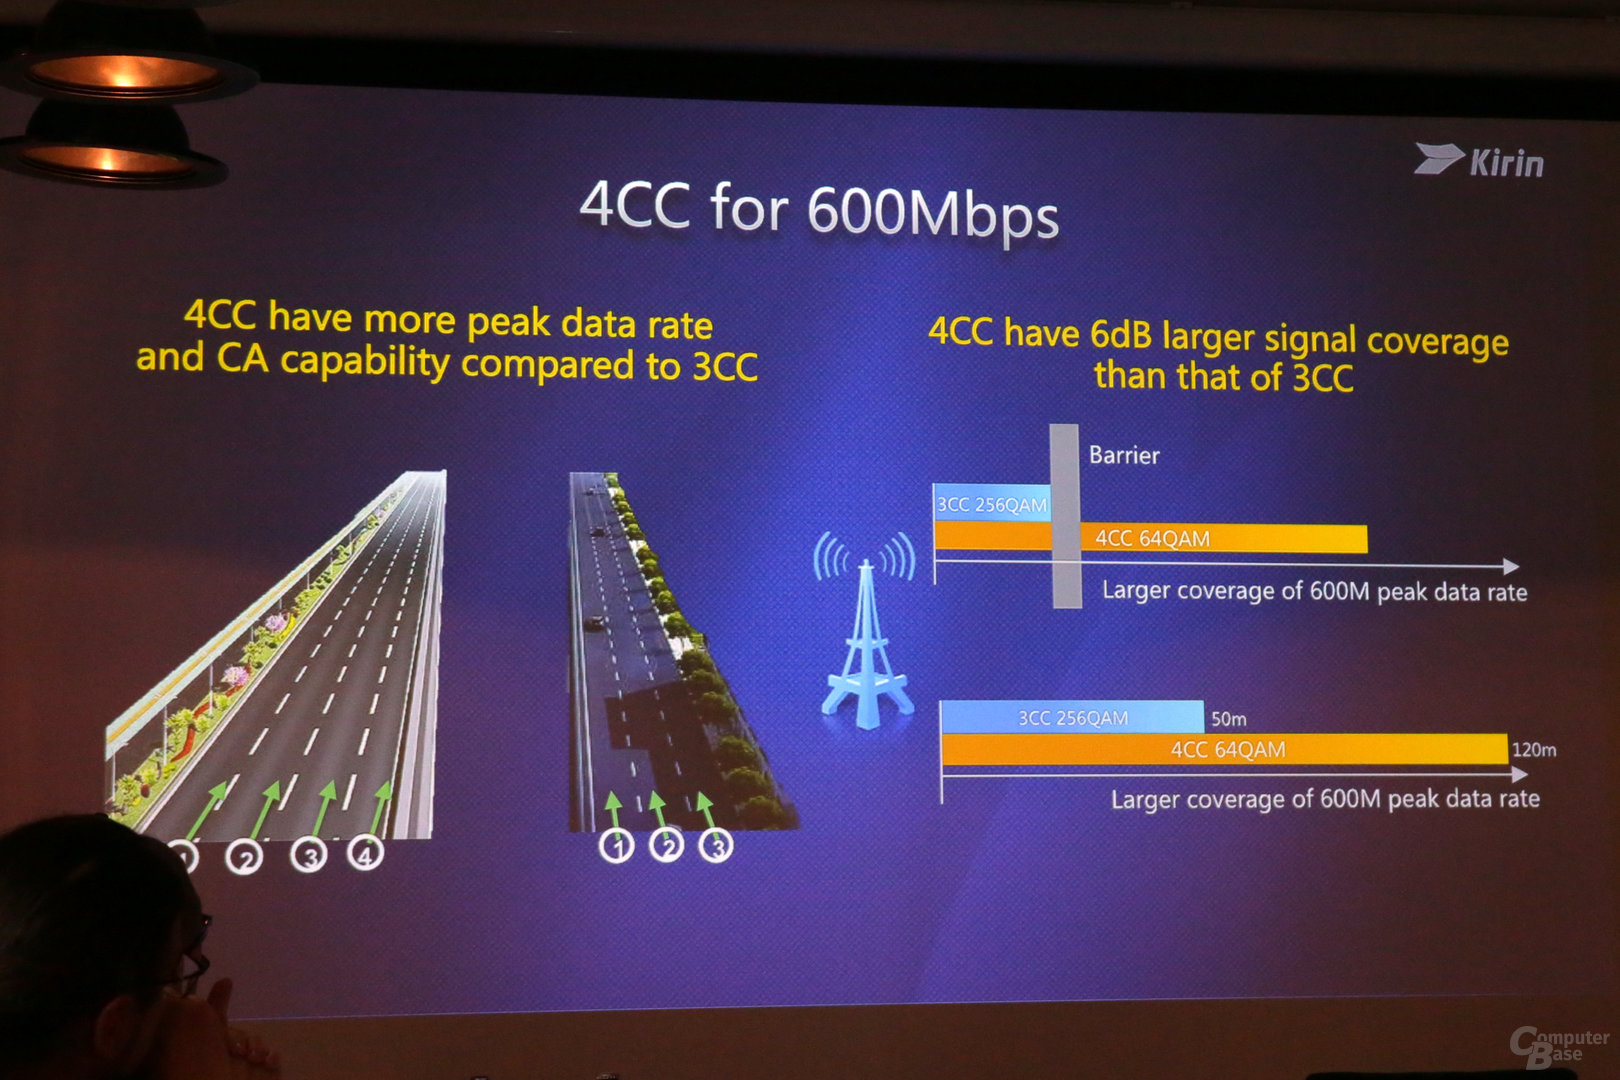 Carrier Aggregation für 600 Mbit/s